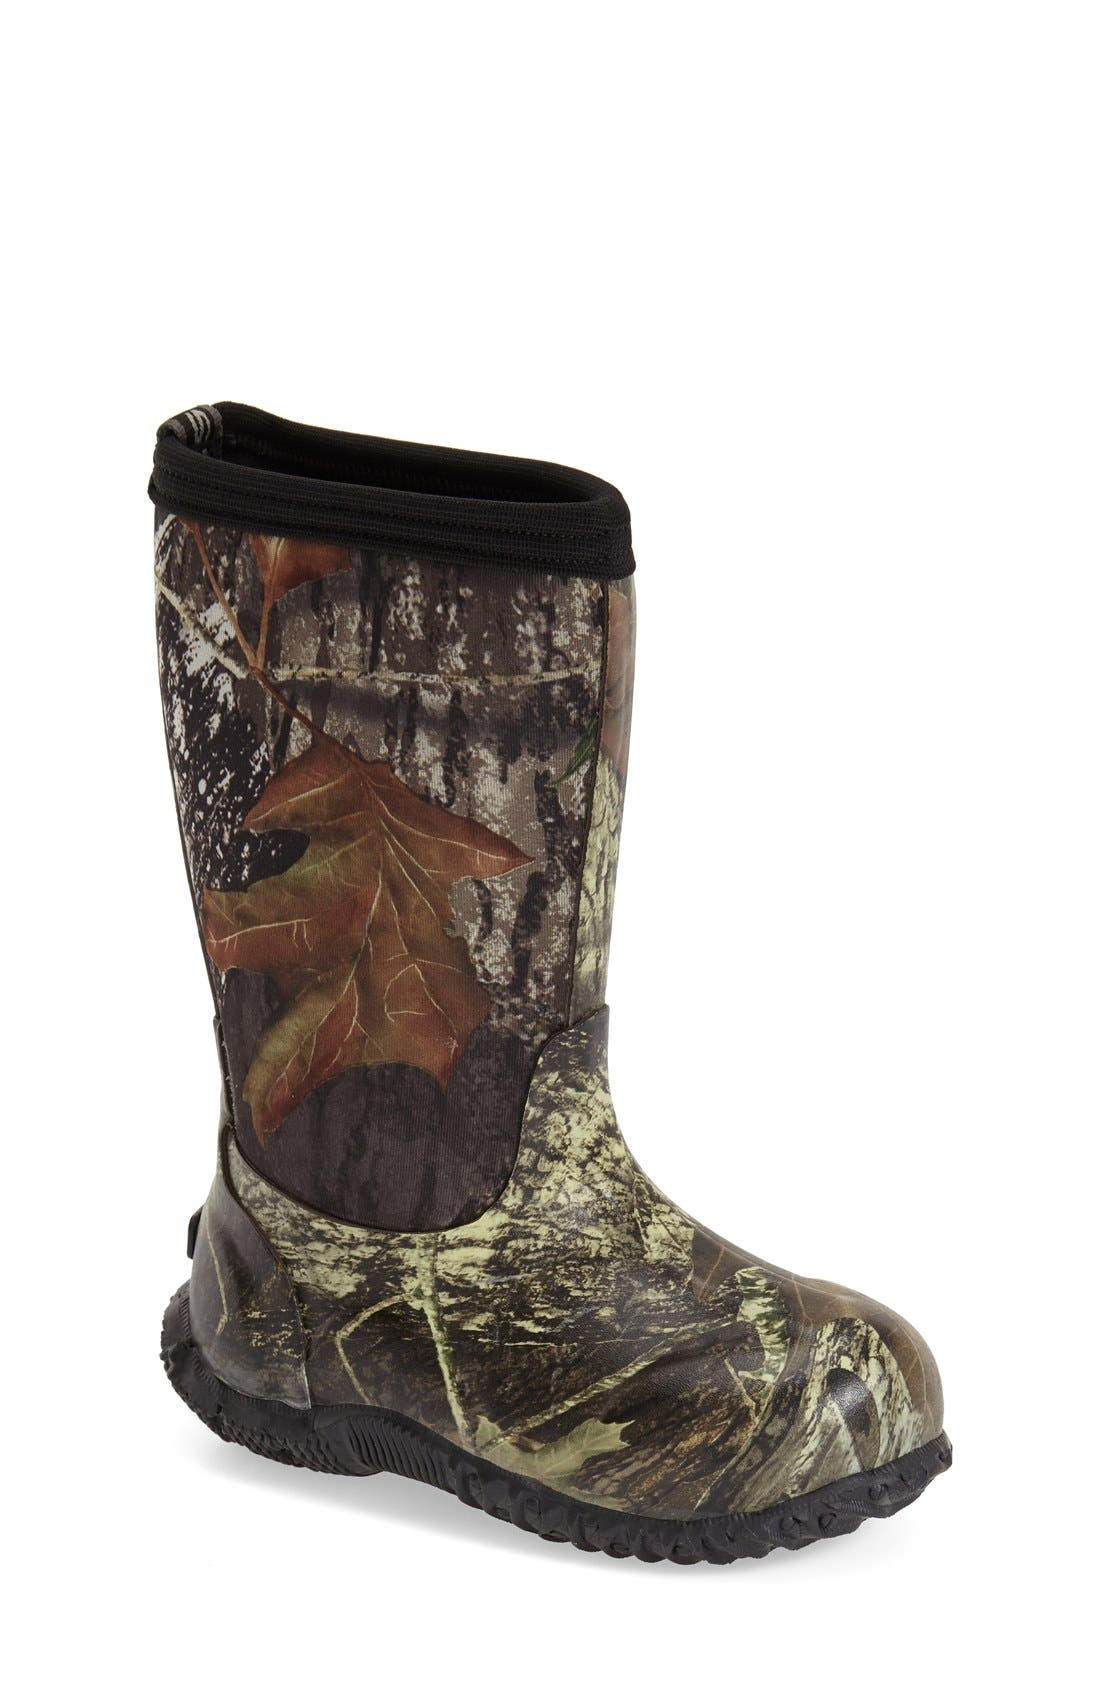 Classic High Insulated Waterproof Boot,                         Main,                         color, MOSSY OAK